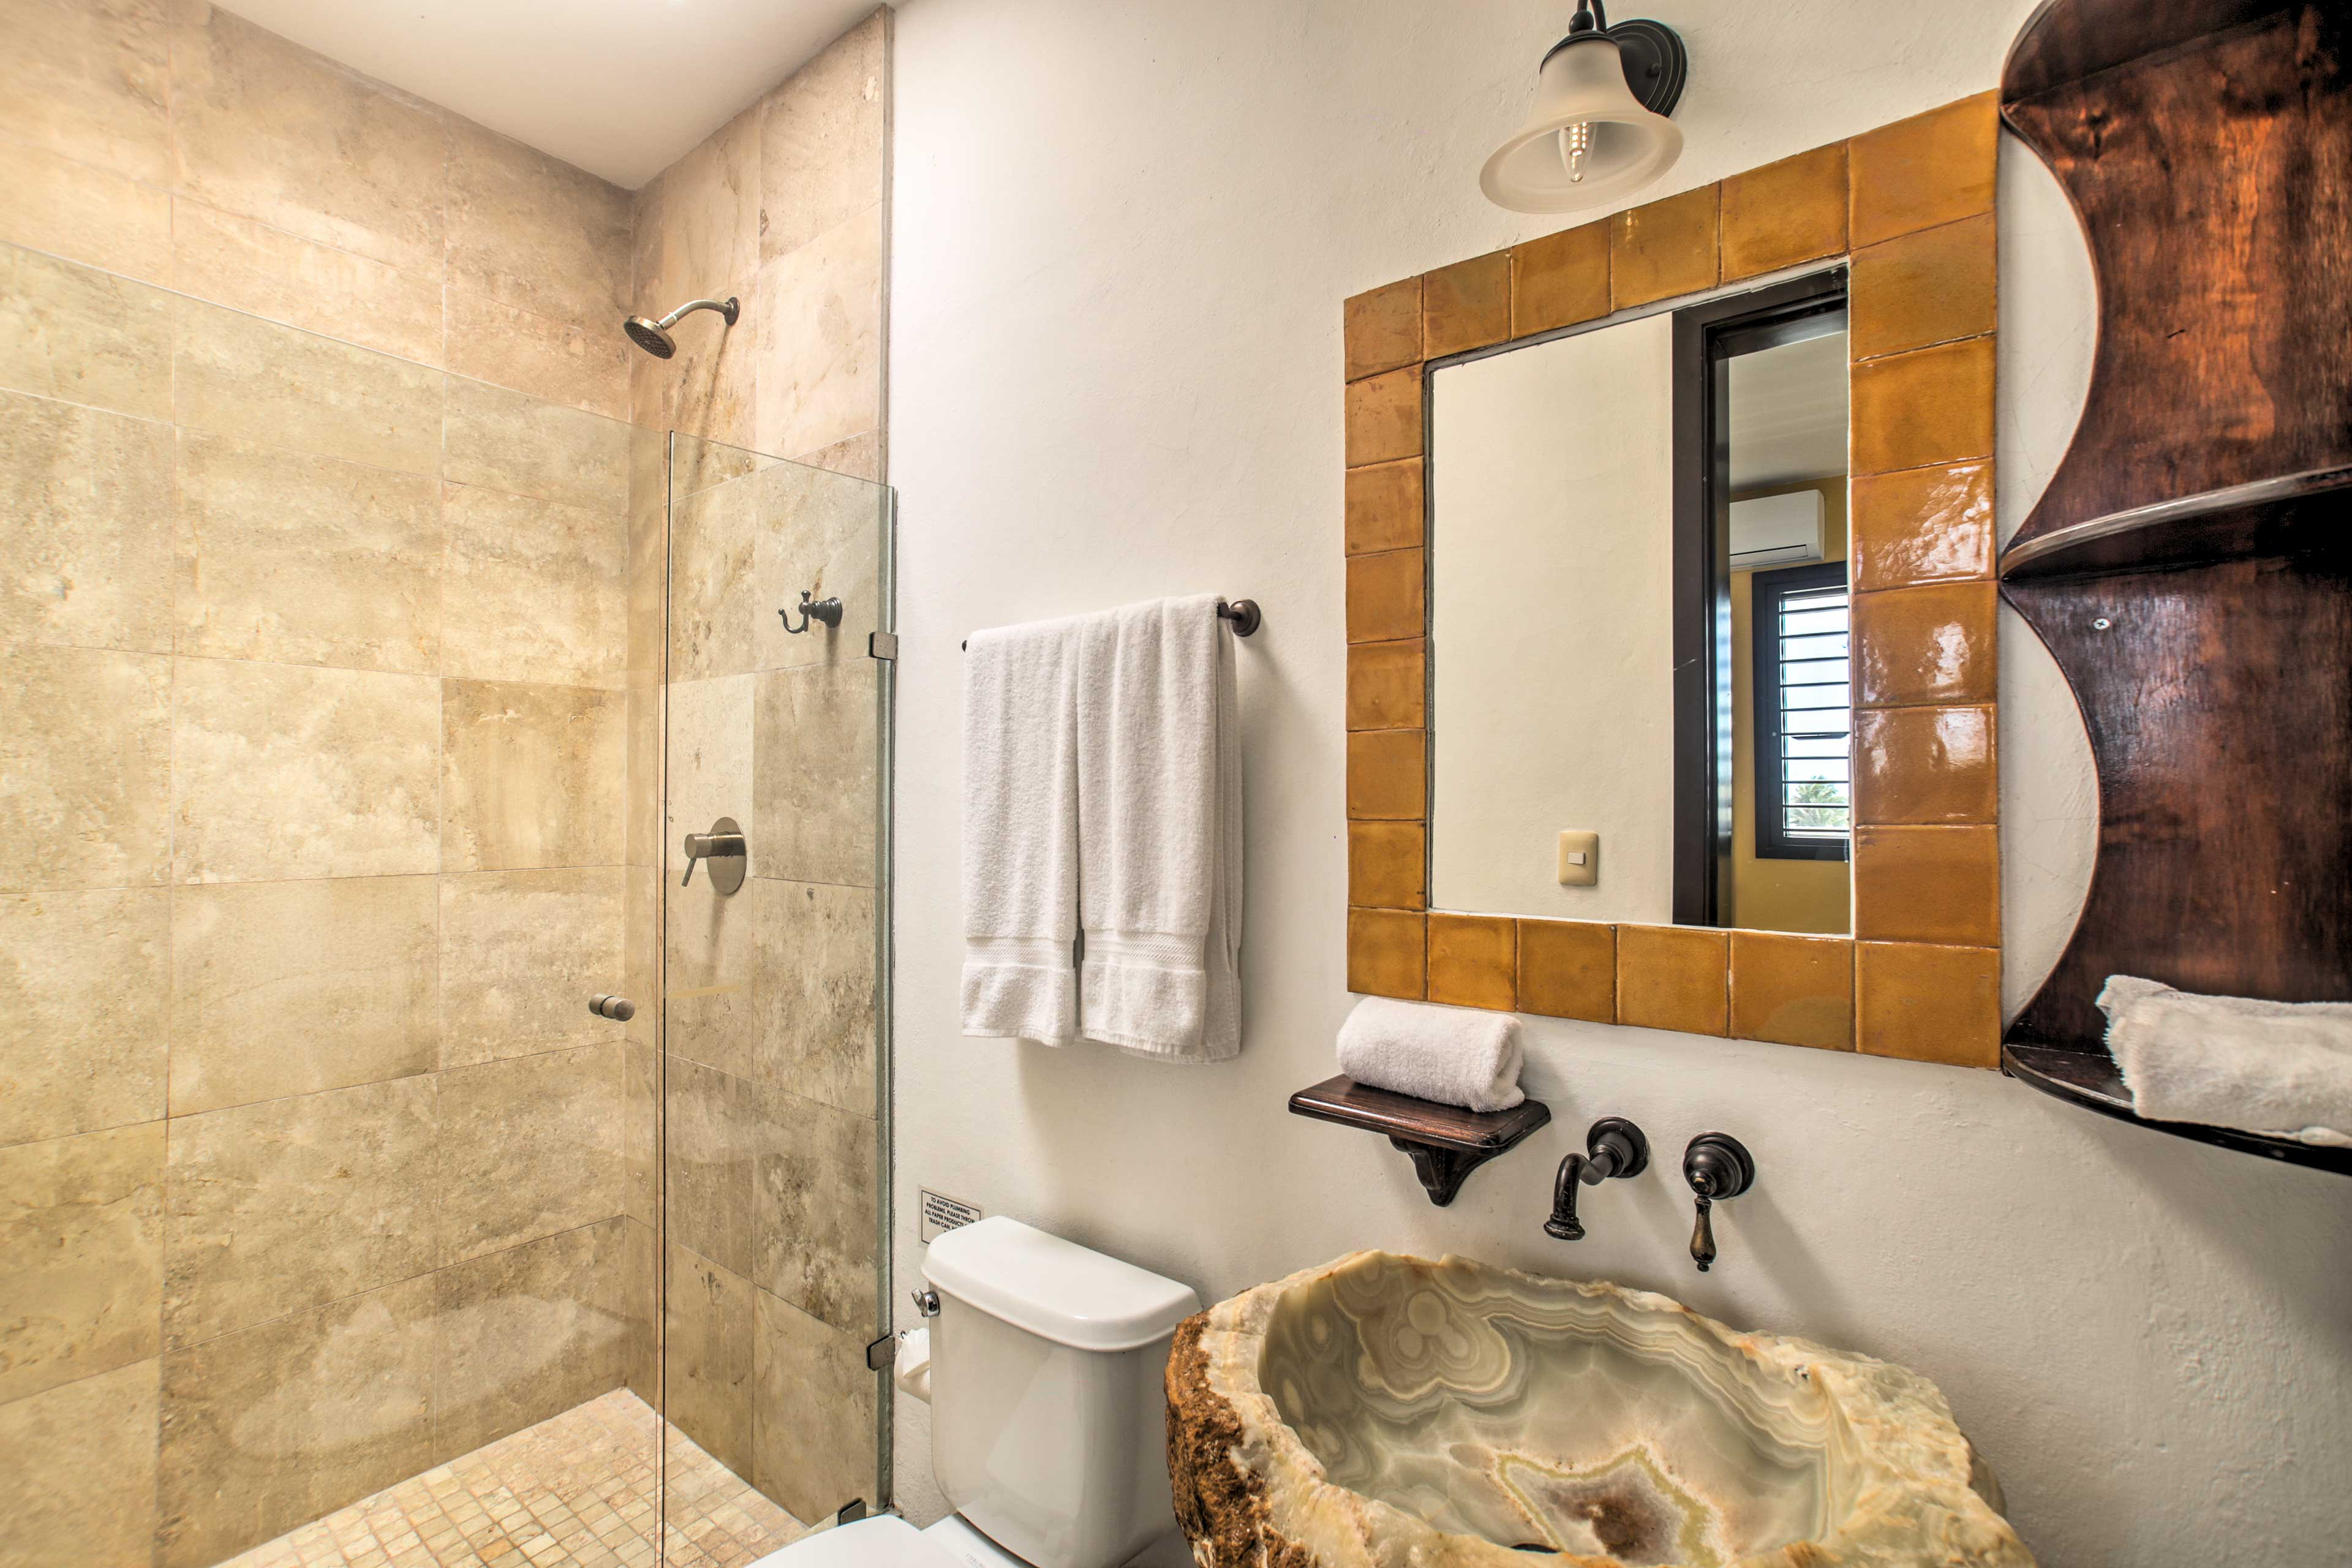 Every guest will have ample privacy!